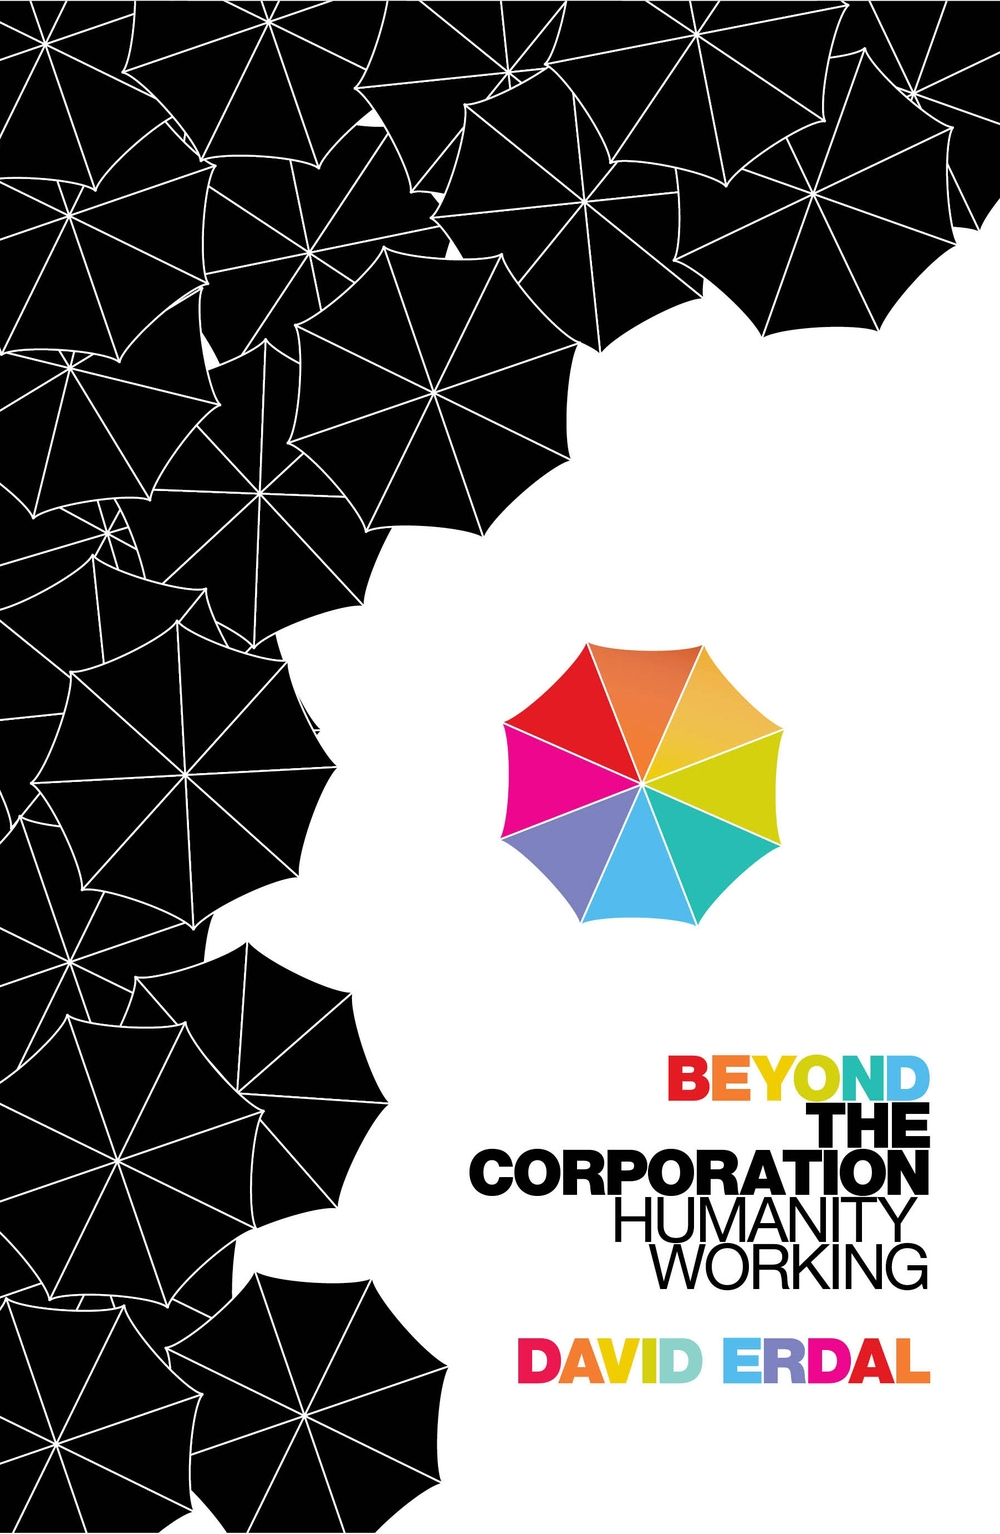 BEYOND THE CORPORATION: HUMANITY WORKING Non-Fiction (Business) 320 pages Bodley Head - March 2011 A book for our times. Offering inspiration and vision in the wake of the financial meltdown, it is the story of ordinary people who share the ownership of the businesses where they work. 'One of the most influential business books of the year.' -- David Robinson, The Scotsman.com